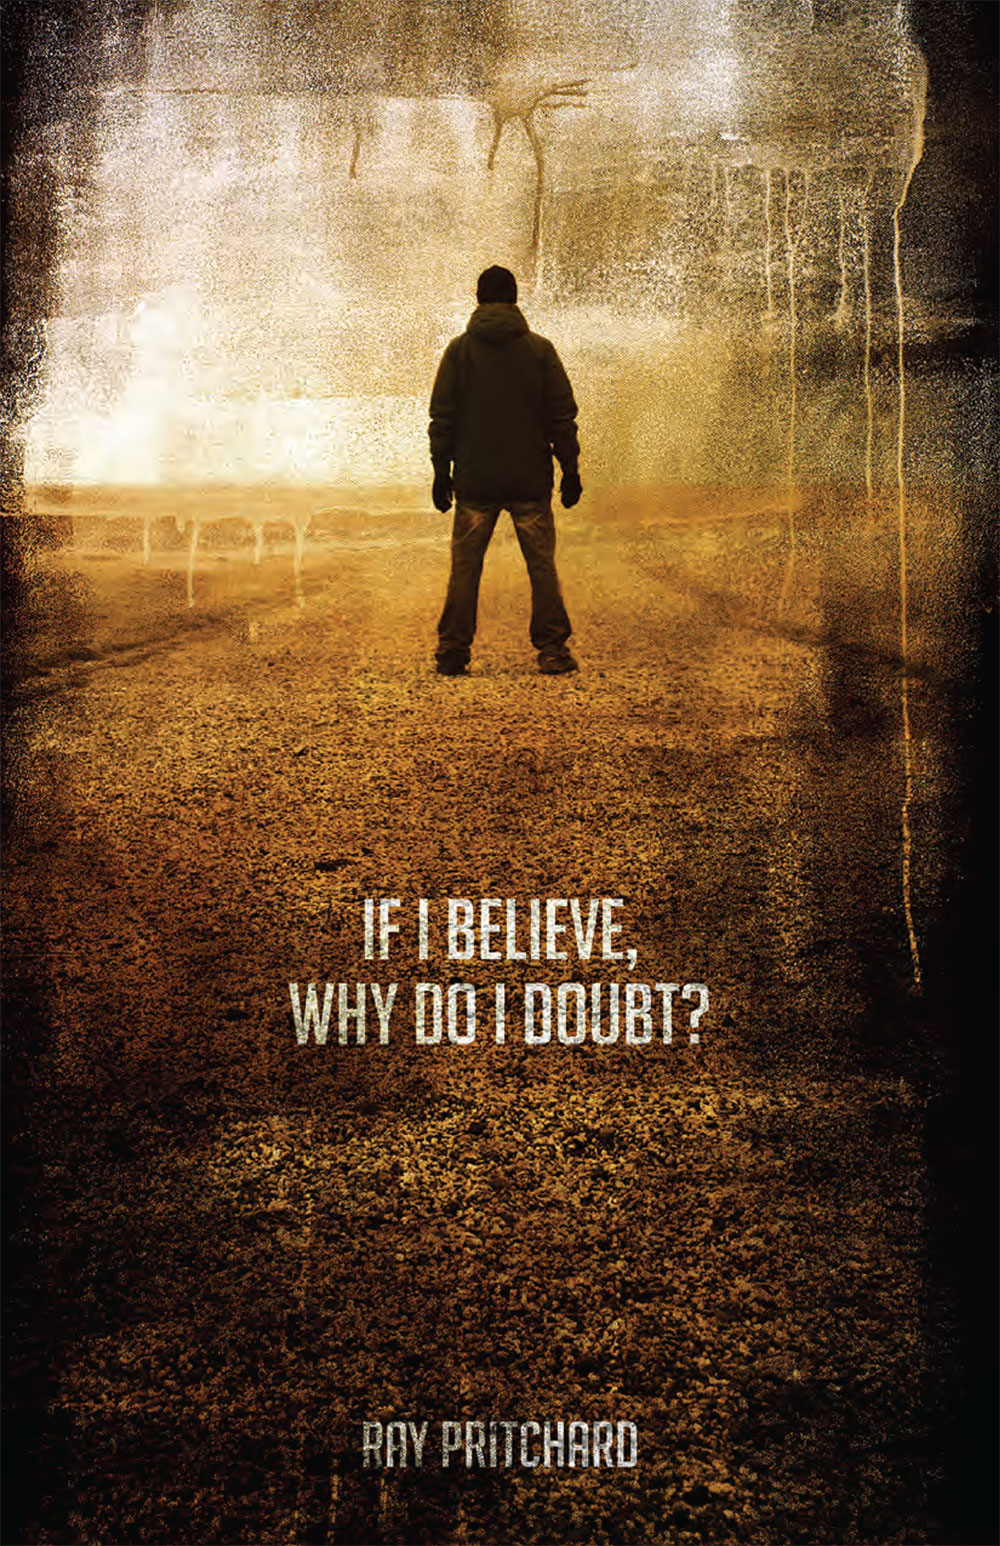 If I Believe, Why Do I Doubt?